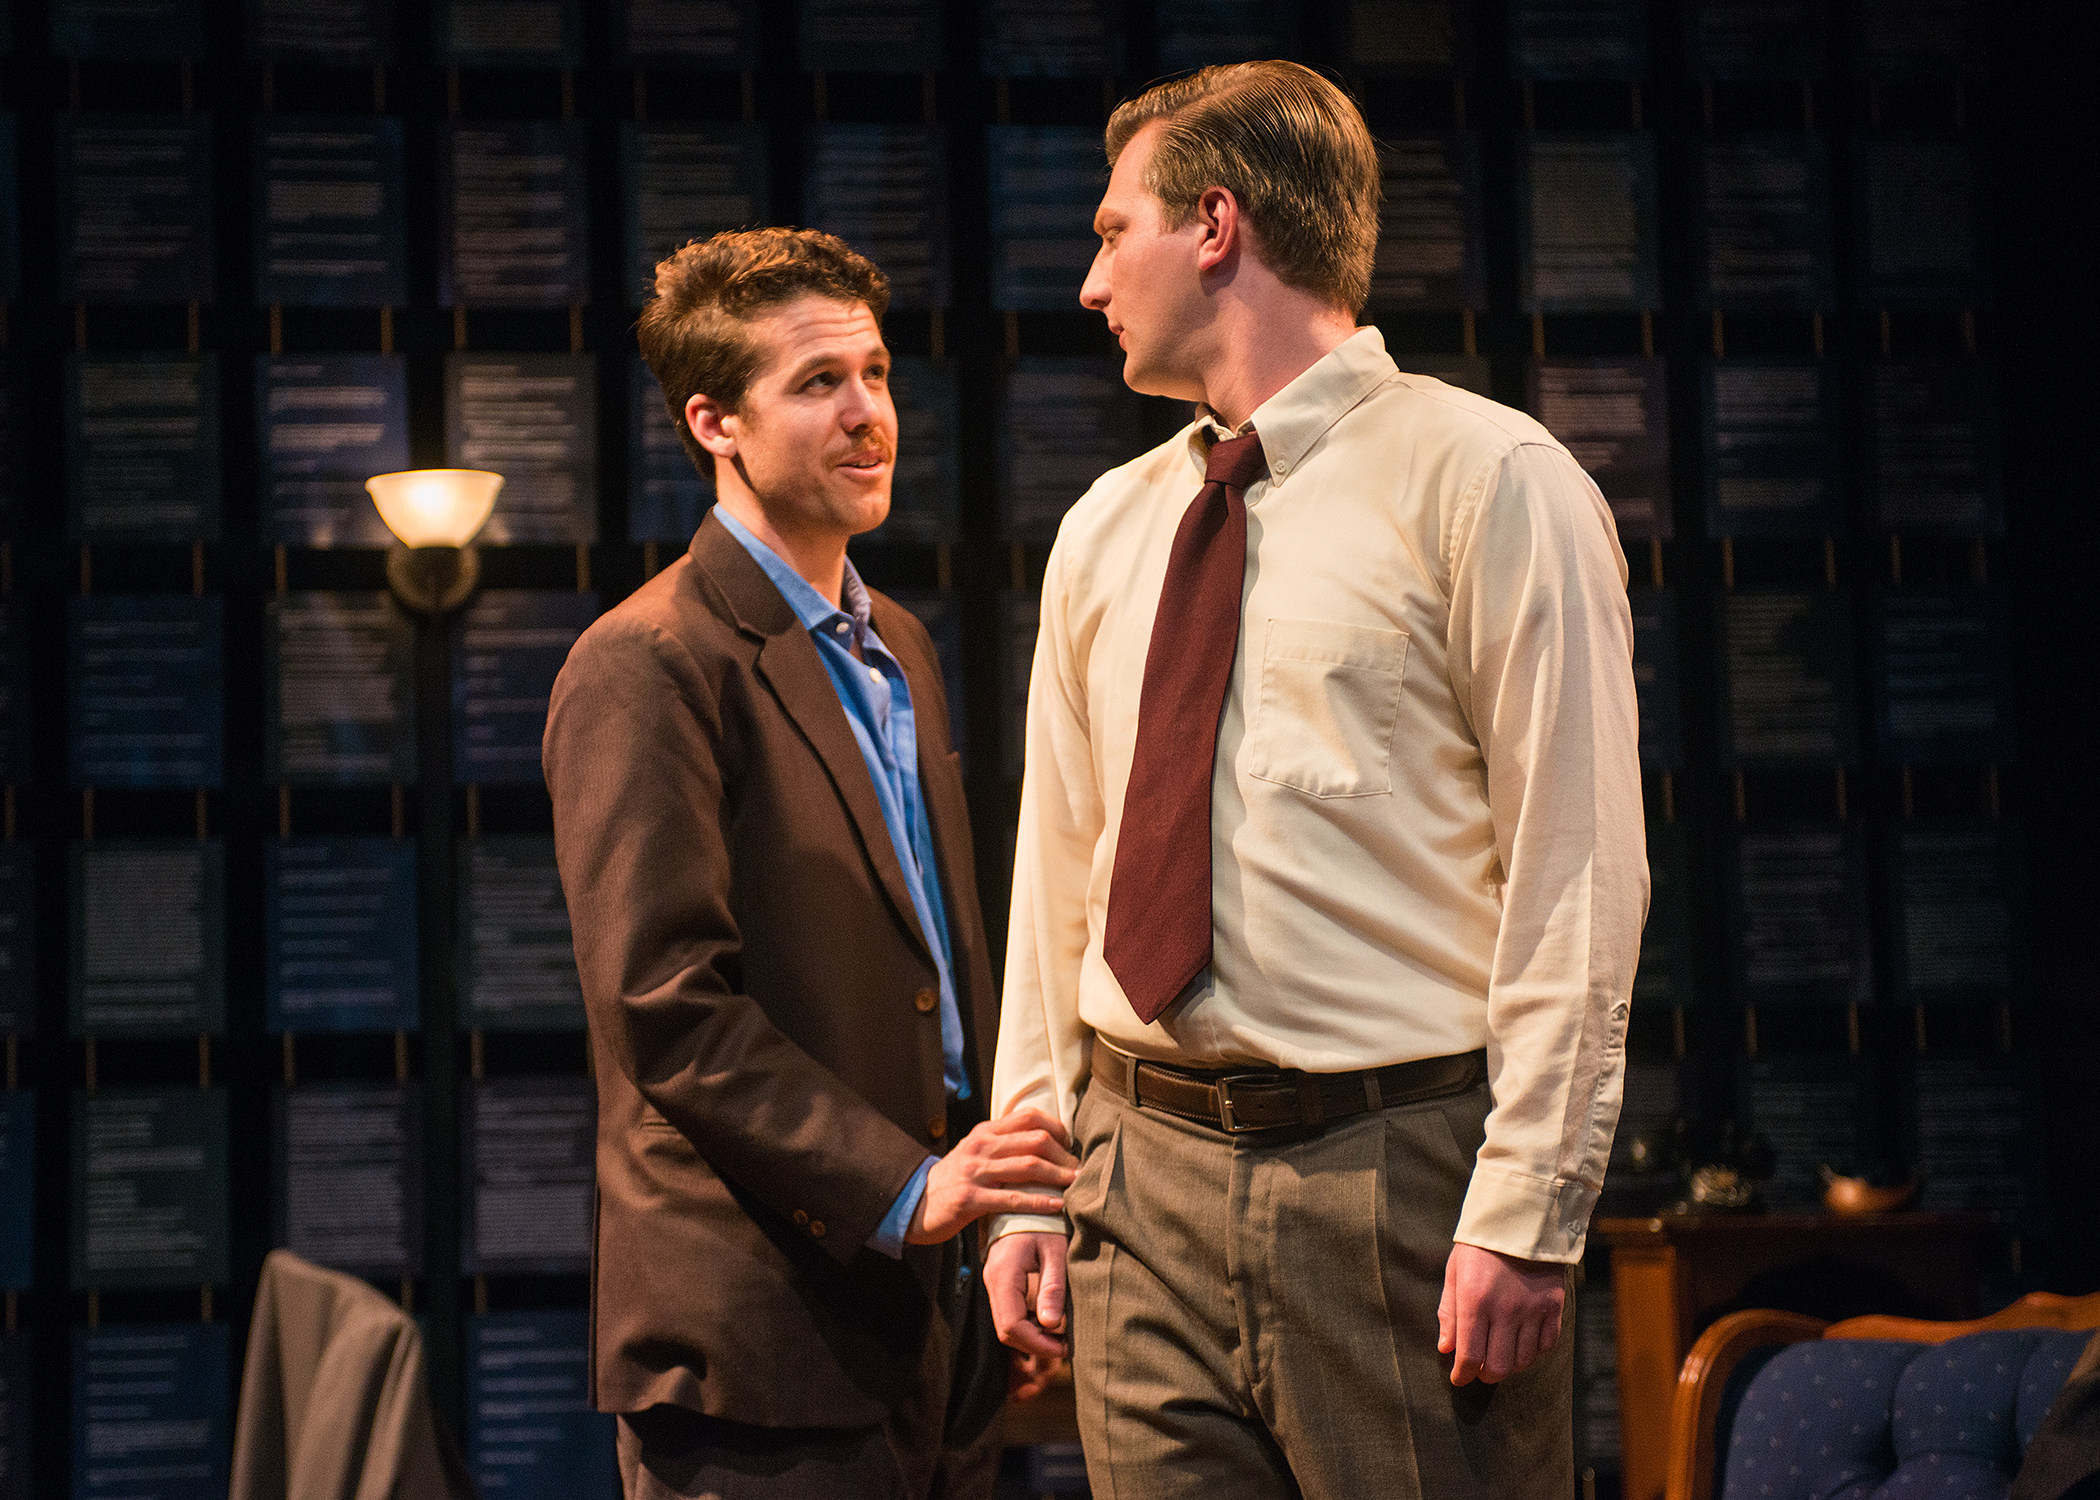 Pictured L to R: Tennessee Williams (Brennan Pickman-Thoon) and William Inge (Adam Niemann) share a moment. Photo by Lois Tema.